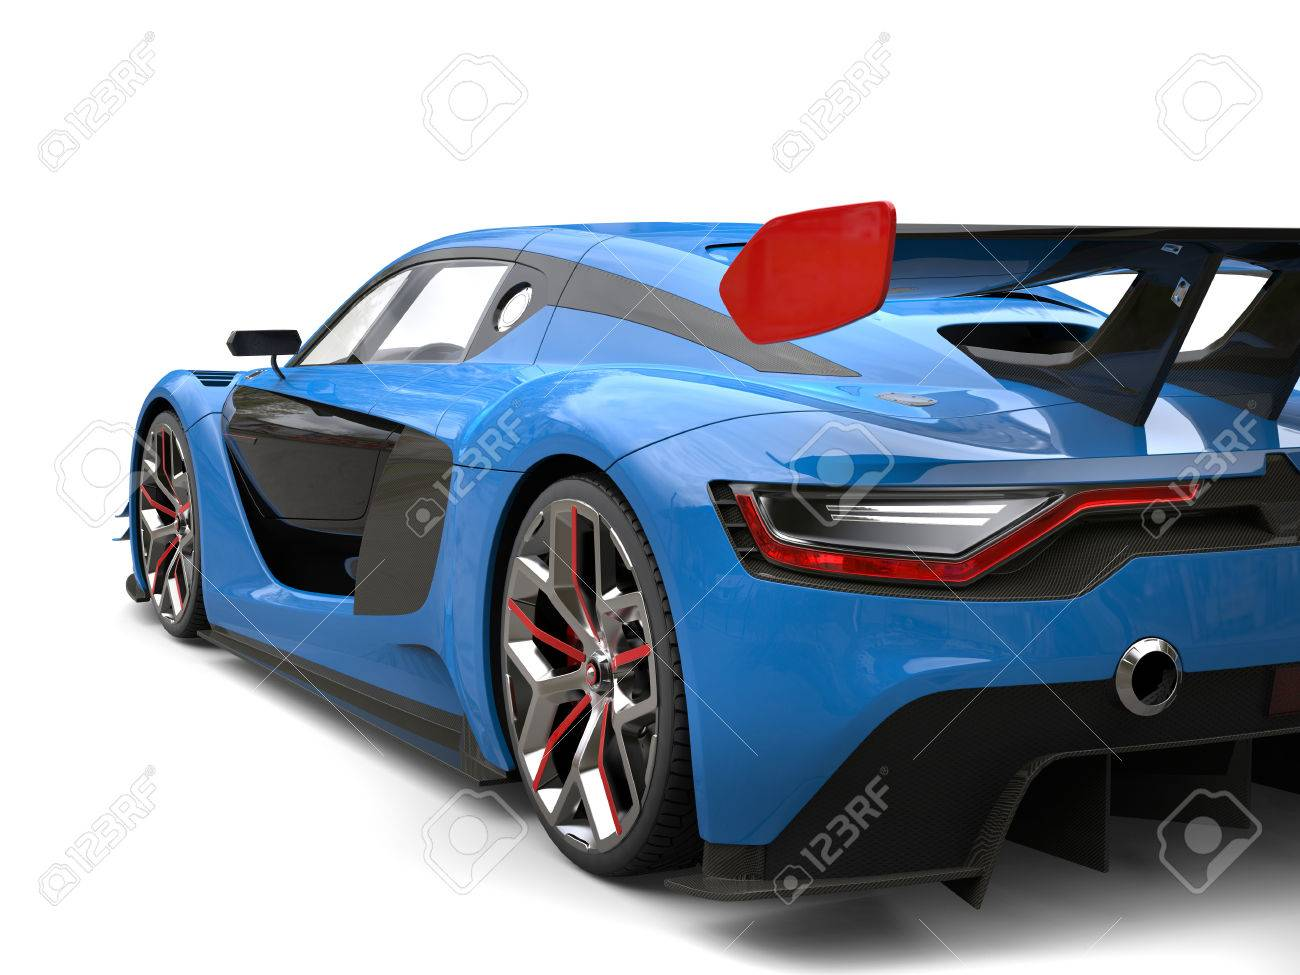 Super Sports Car Navy Blue And Black Colors Scheme With Red